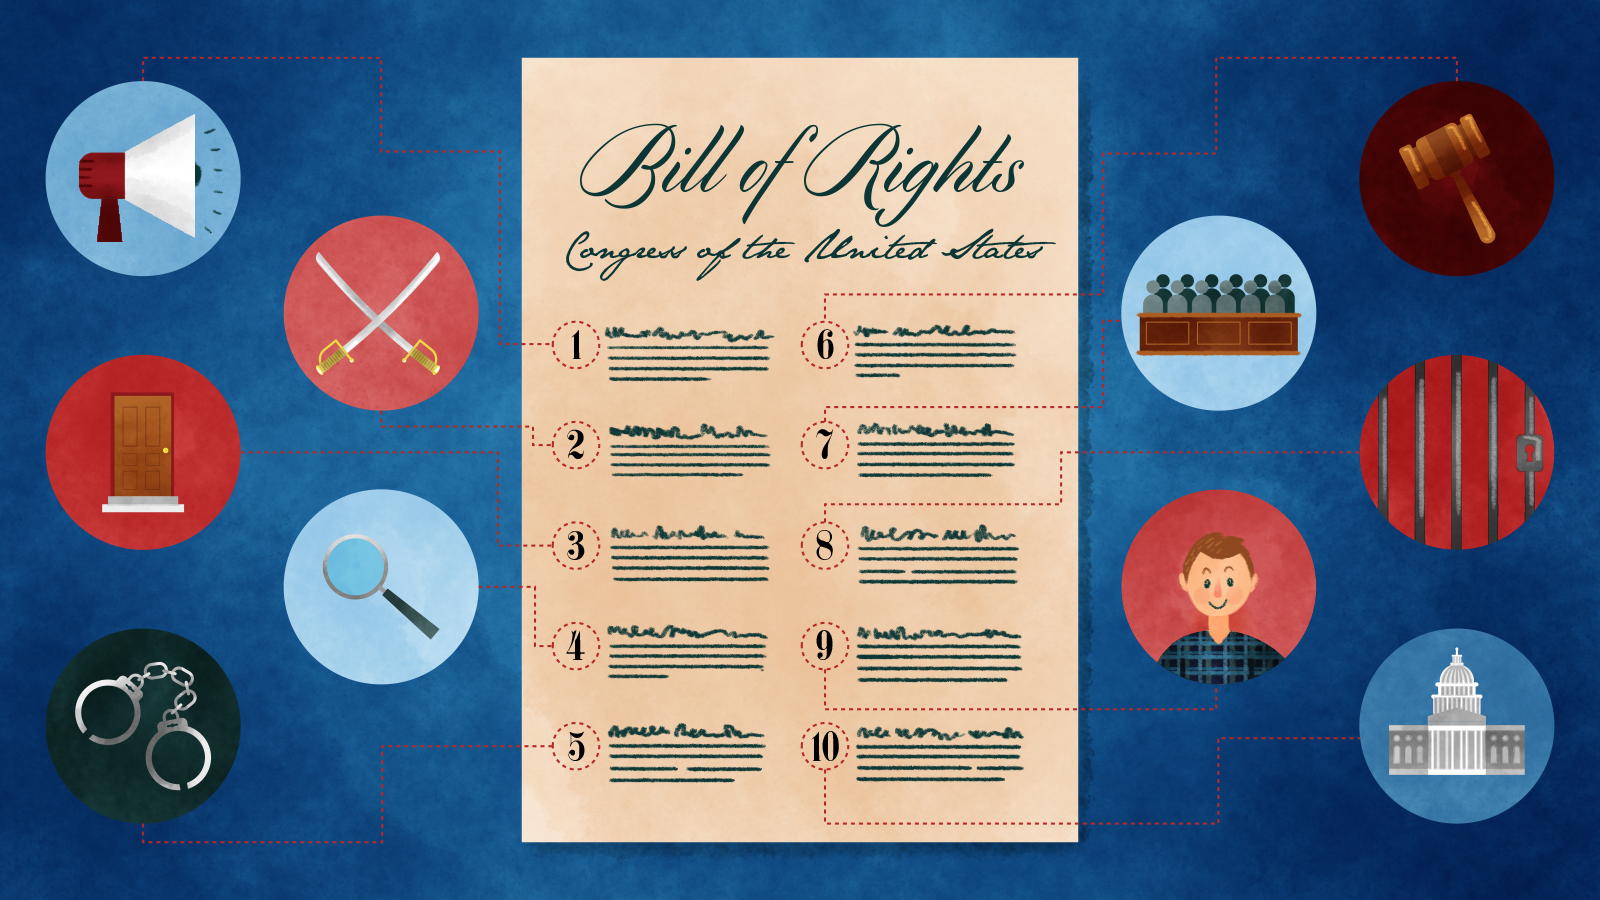 Sample Questions to Celebrate the Bill of Rights